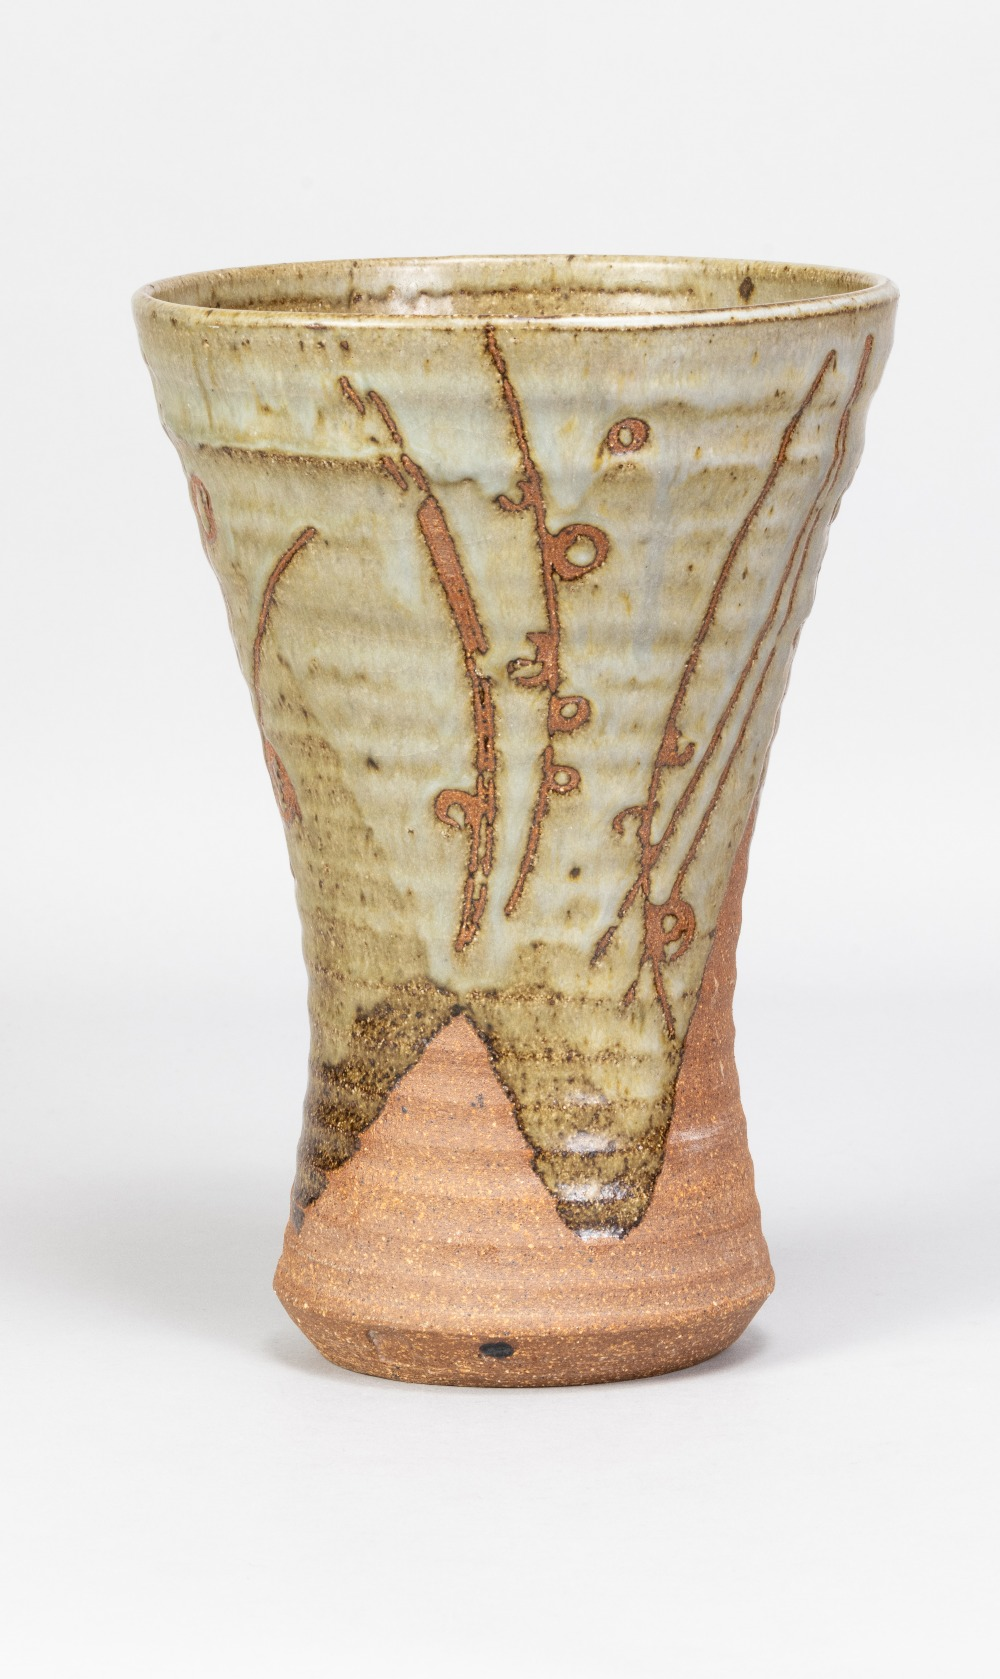 MICHAEL CASSON (1925-2003); a waisted stoneware vase partially covered in green glaze with wax - Image 2 of 5